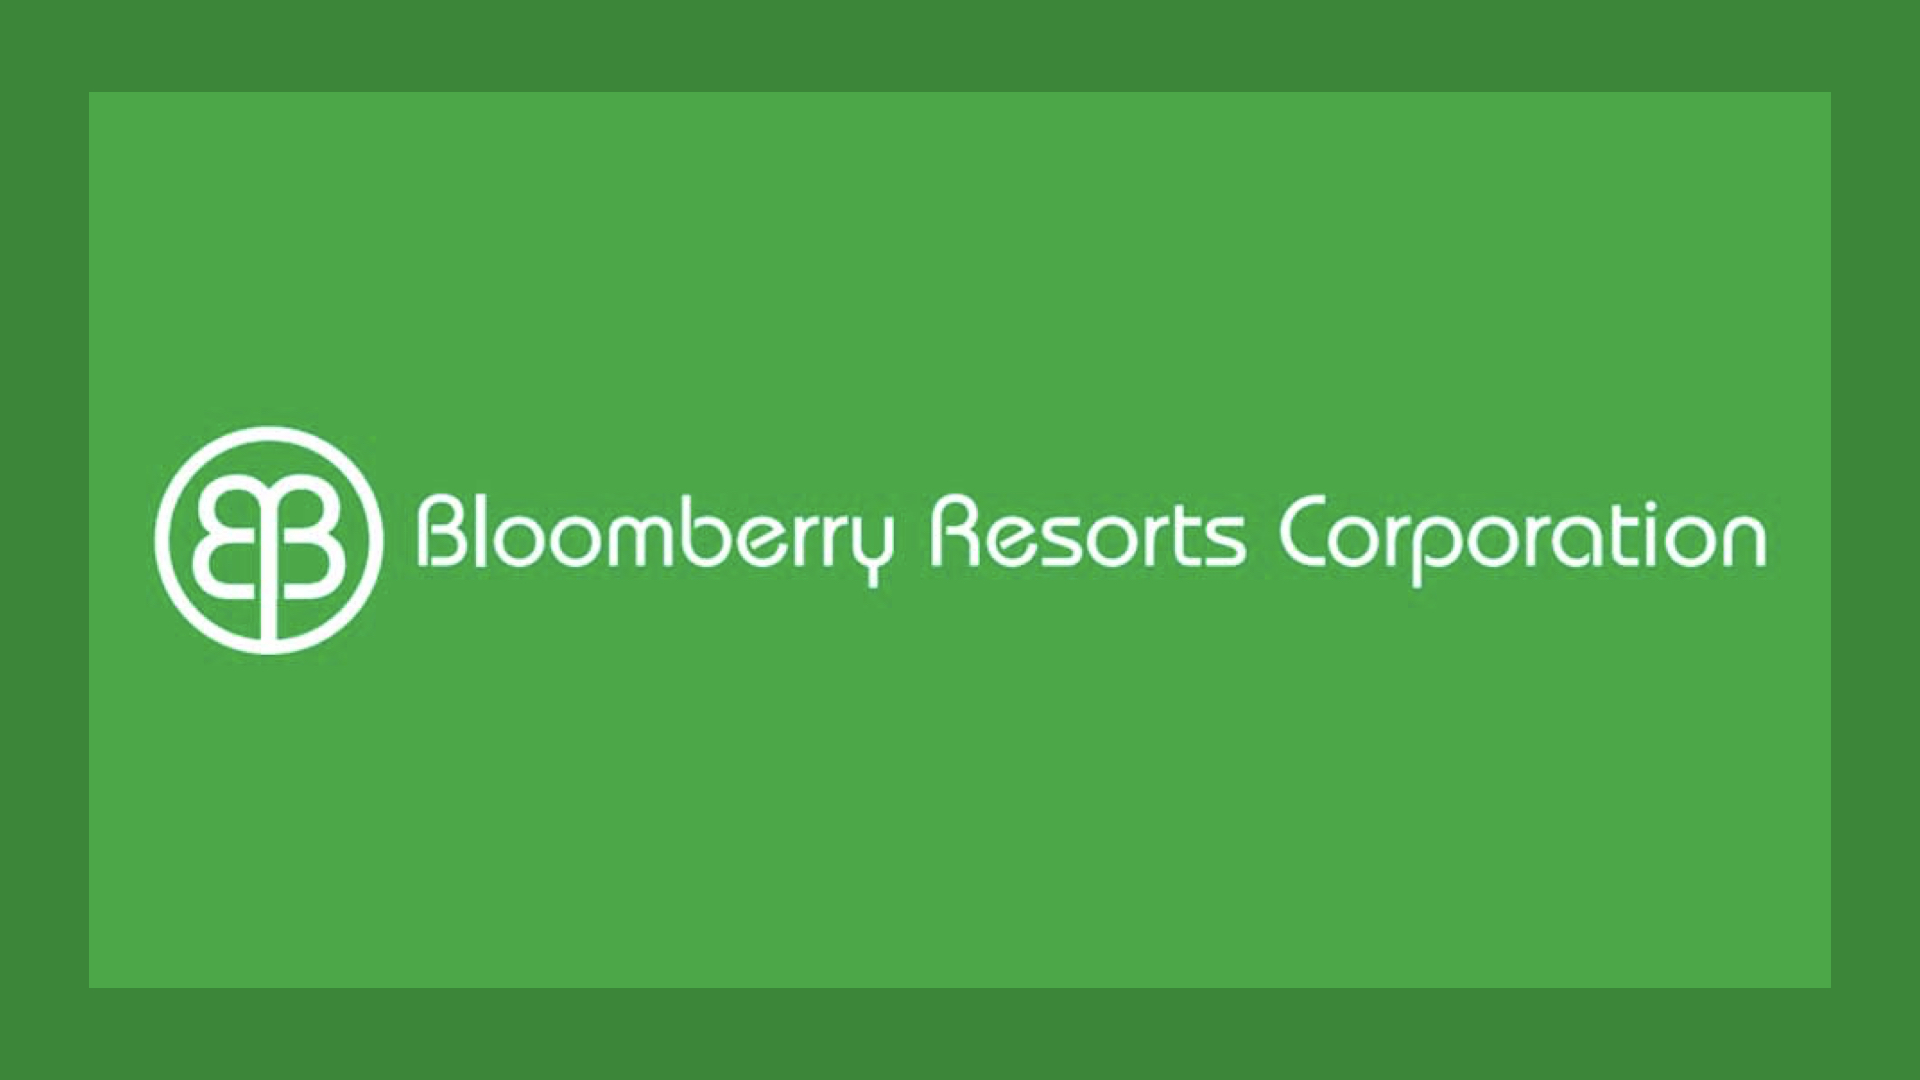 Bloomberry Foundation, PAGCOR complete quarantine facilities